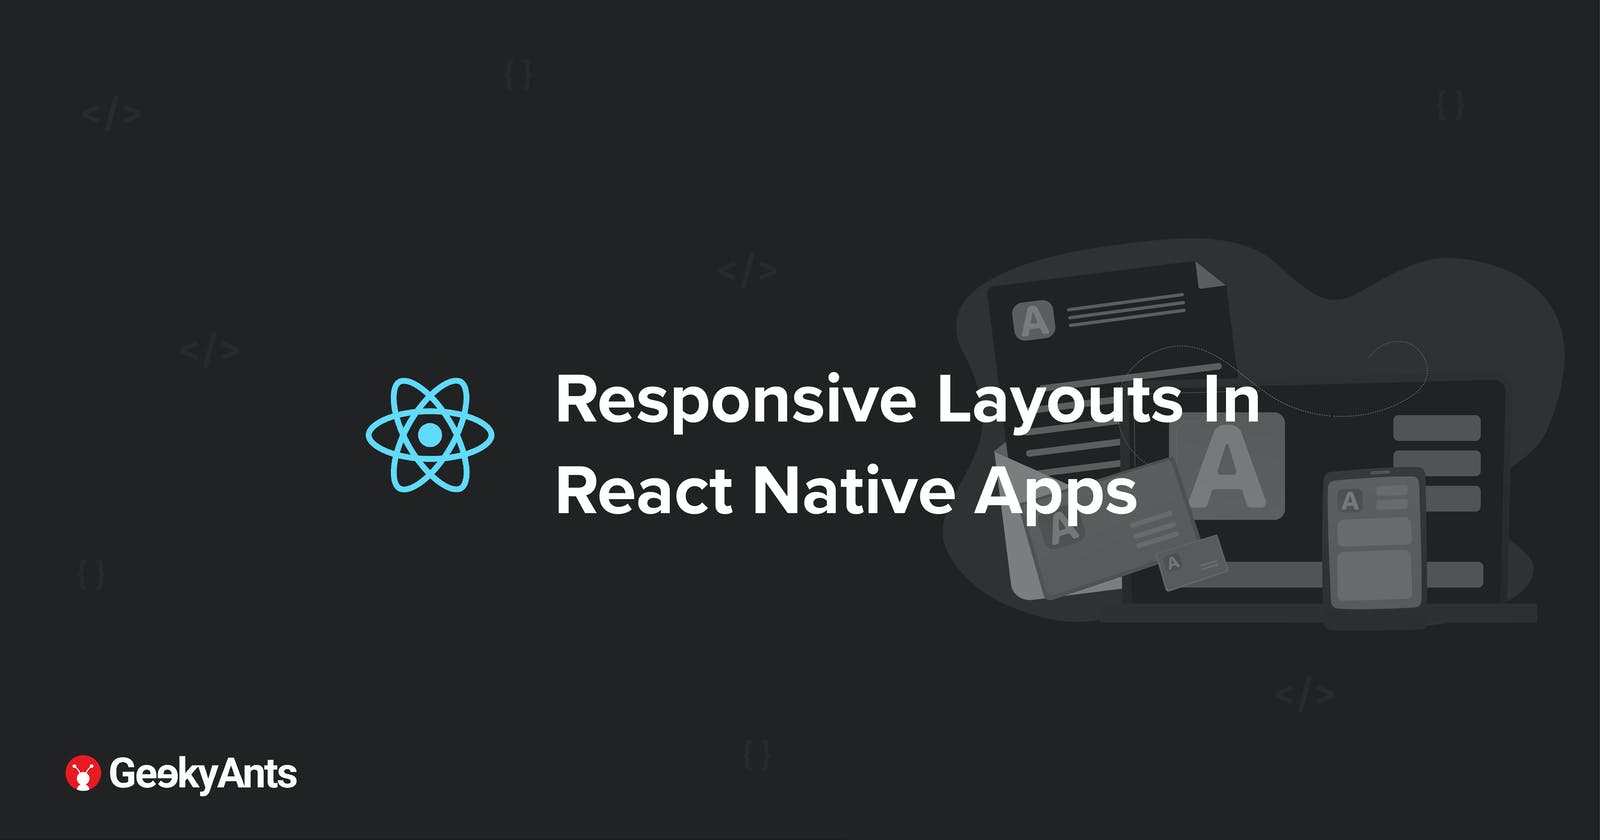 Responsive Layouts In React Native Apps